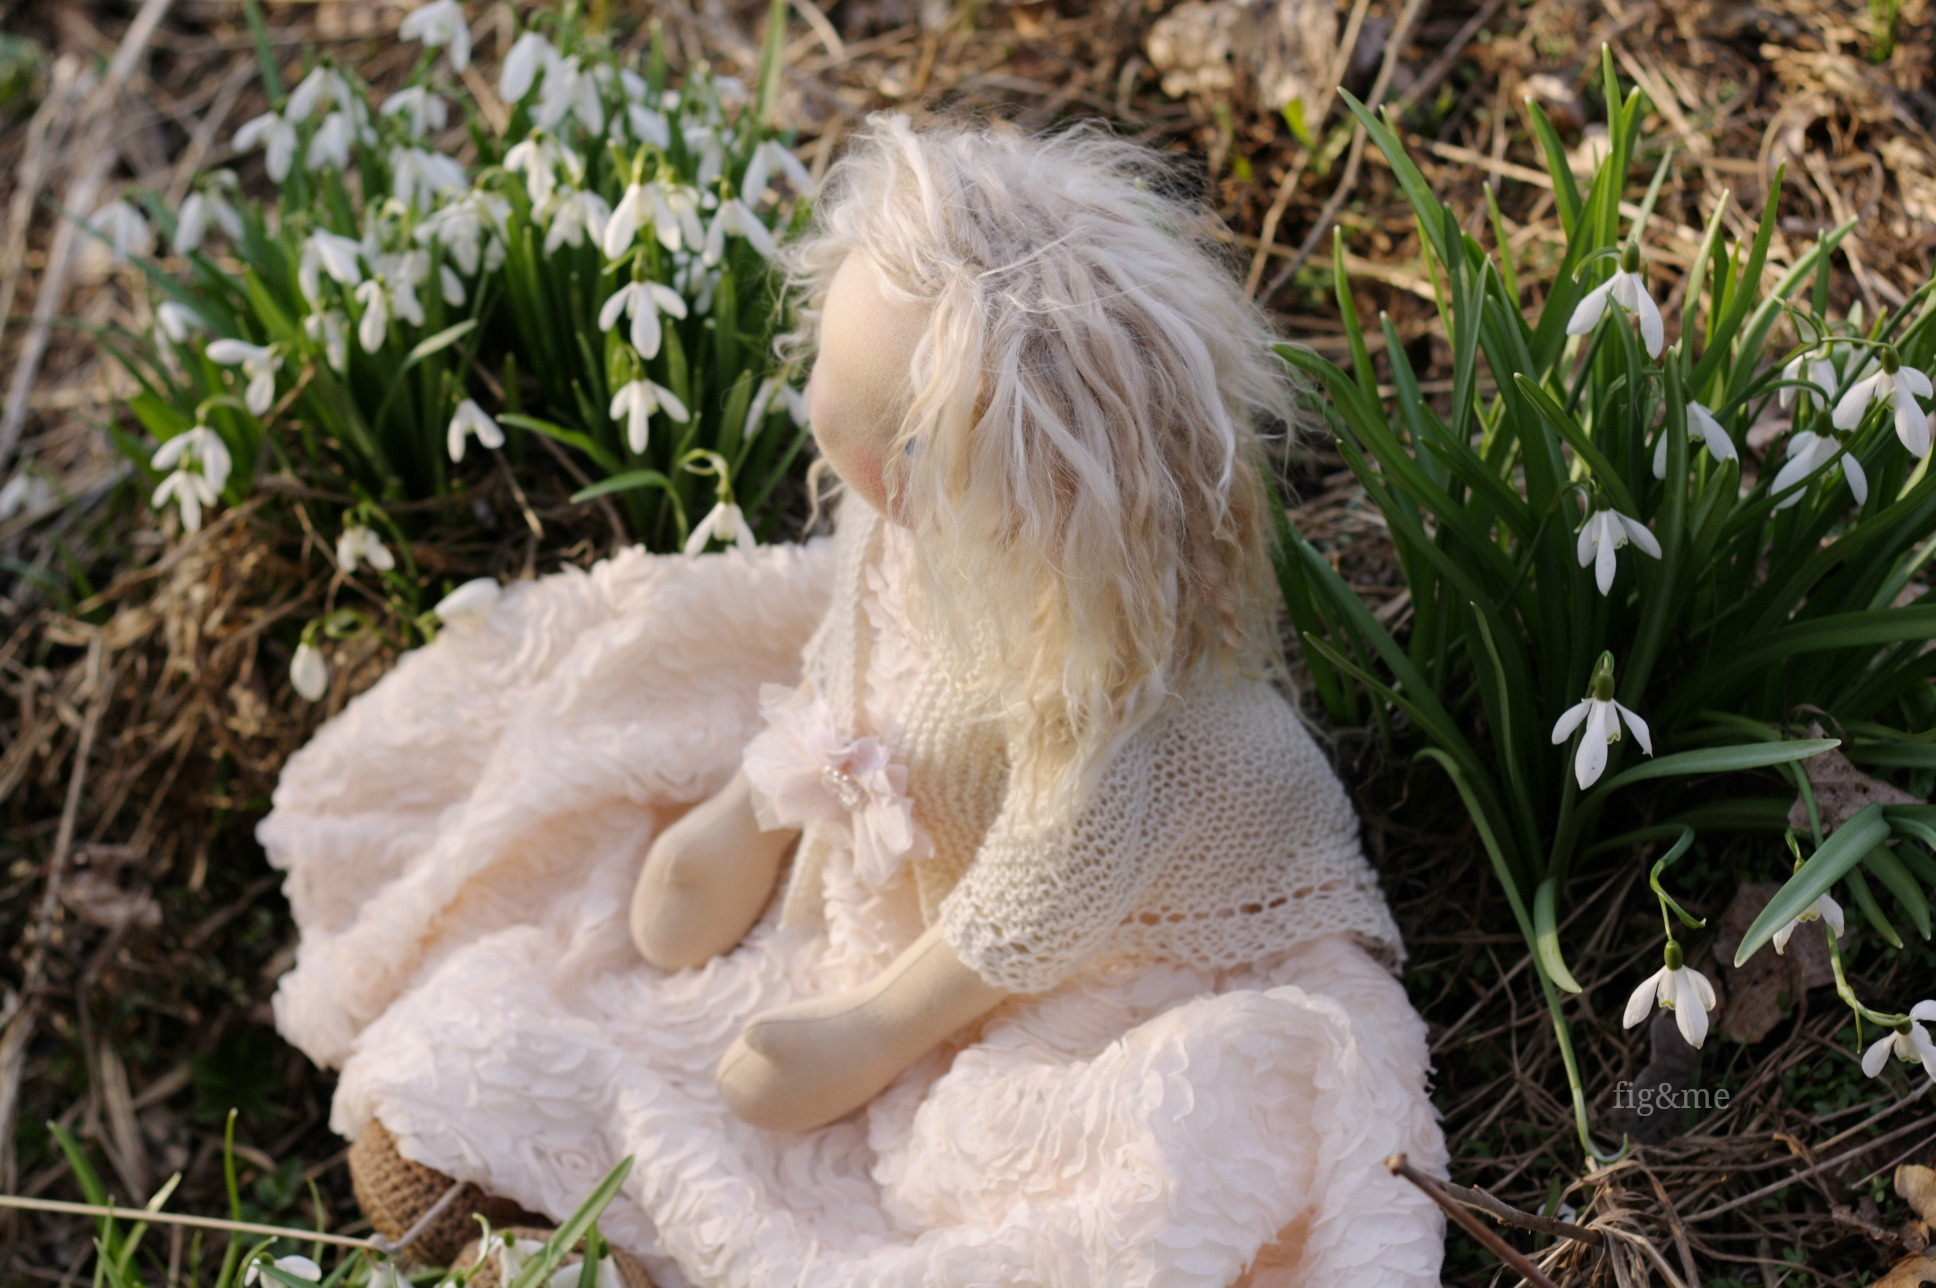 By the snowdrops, Fig&me.